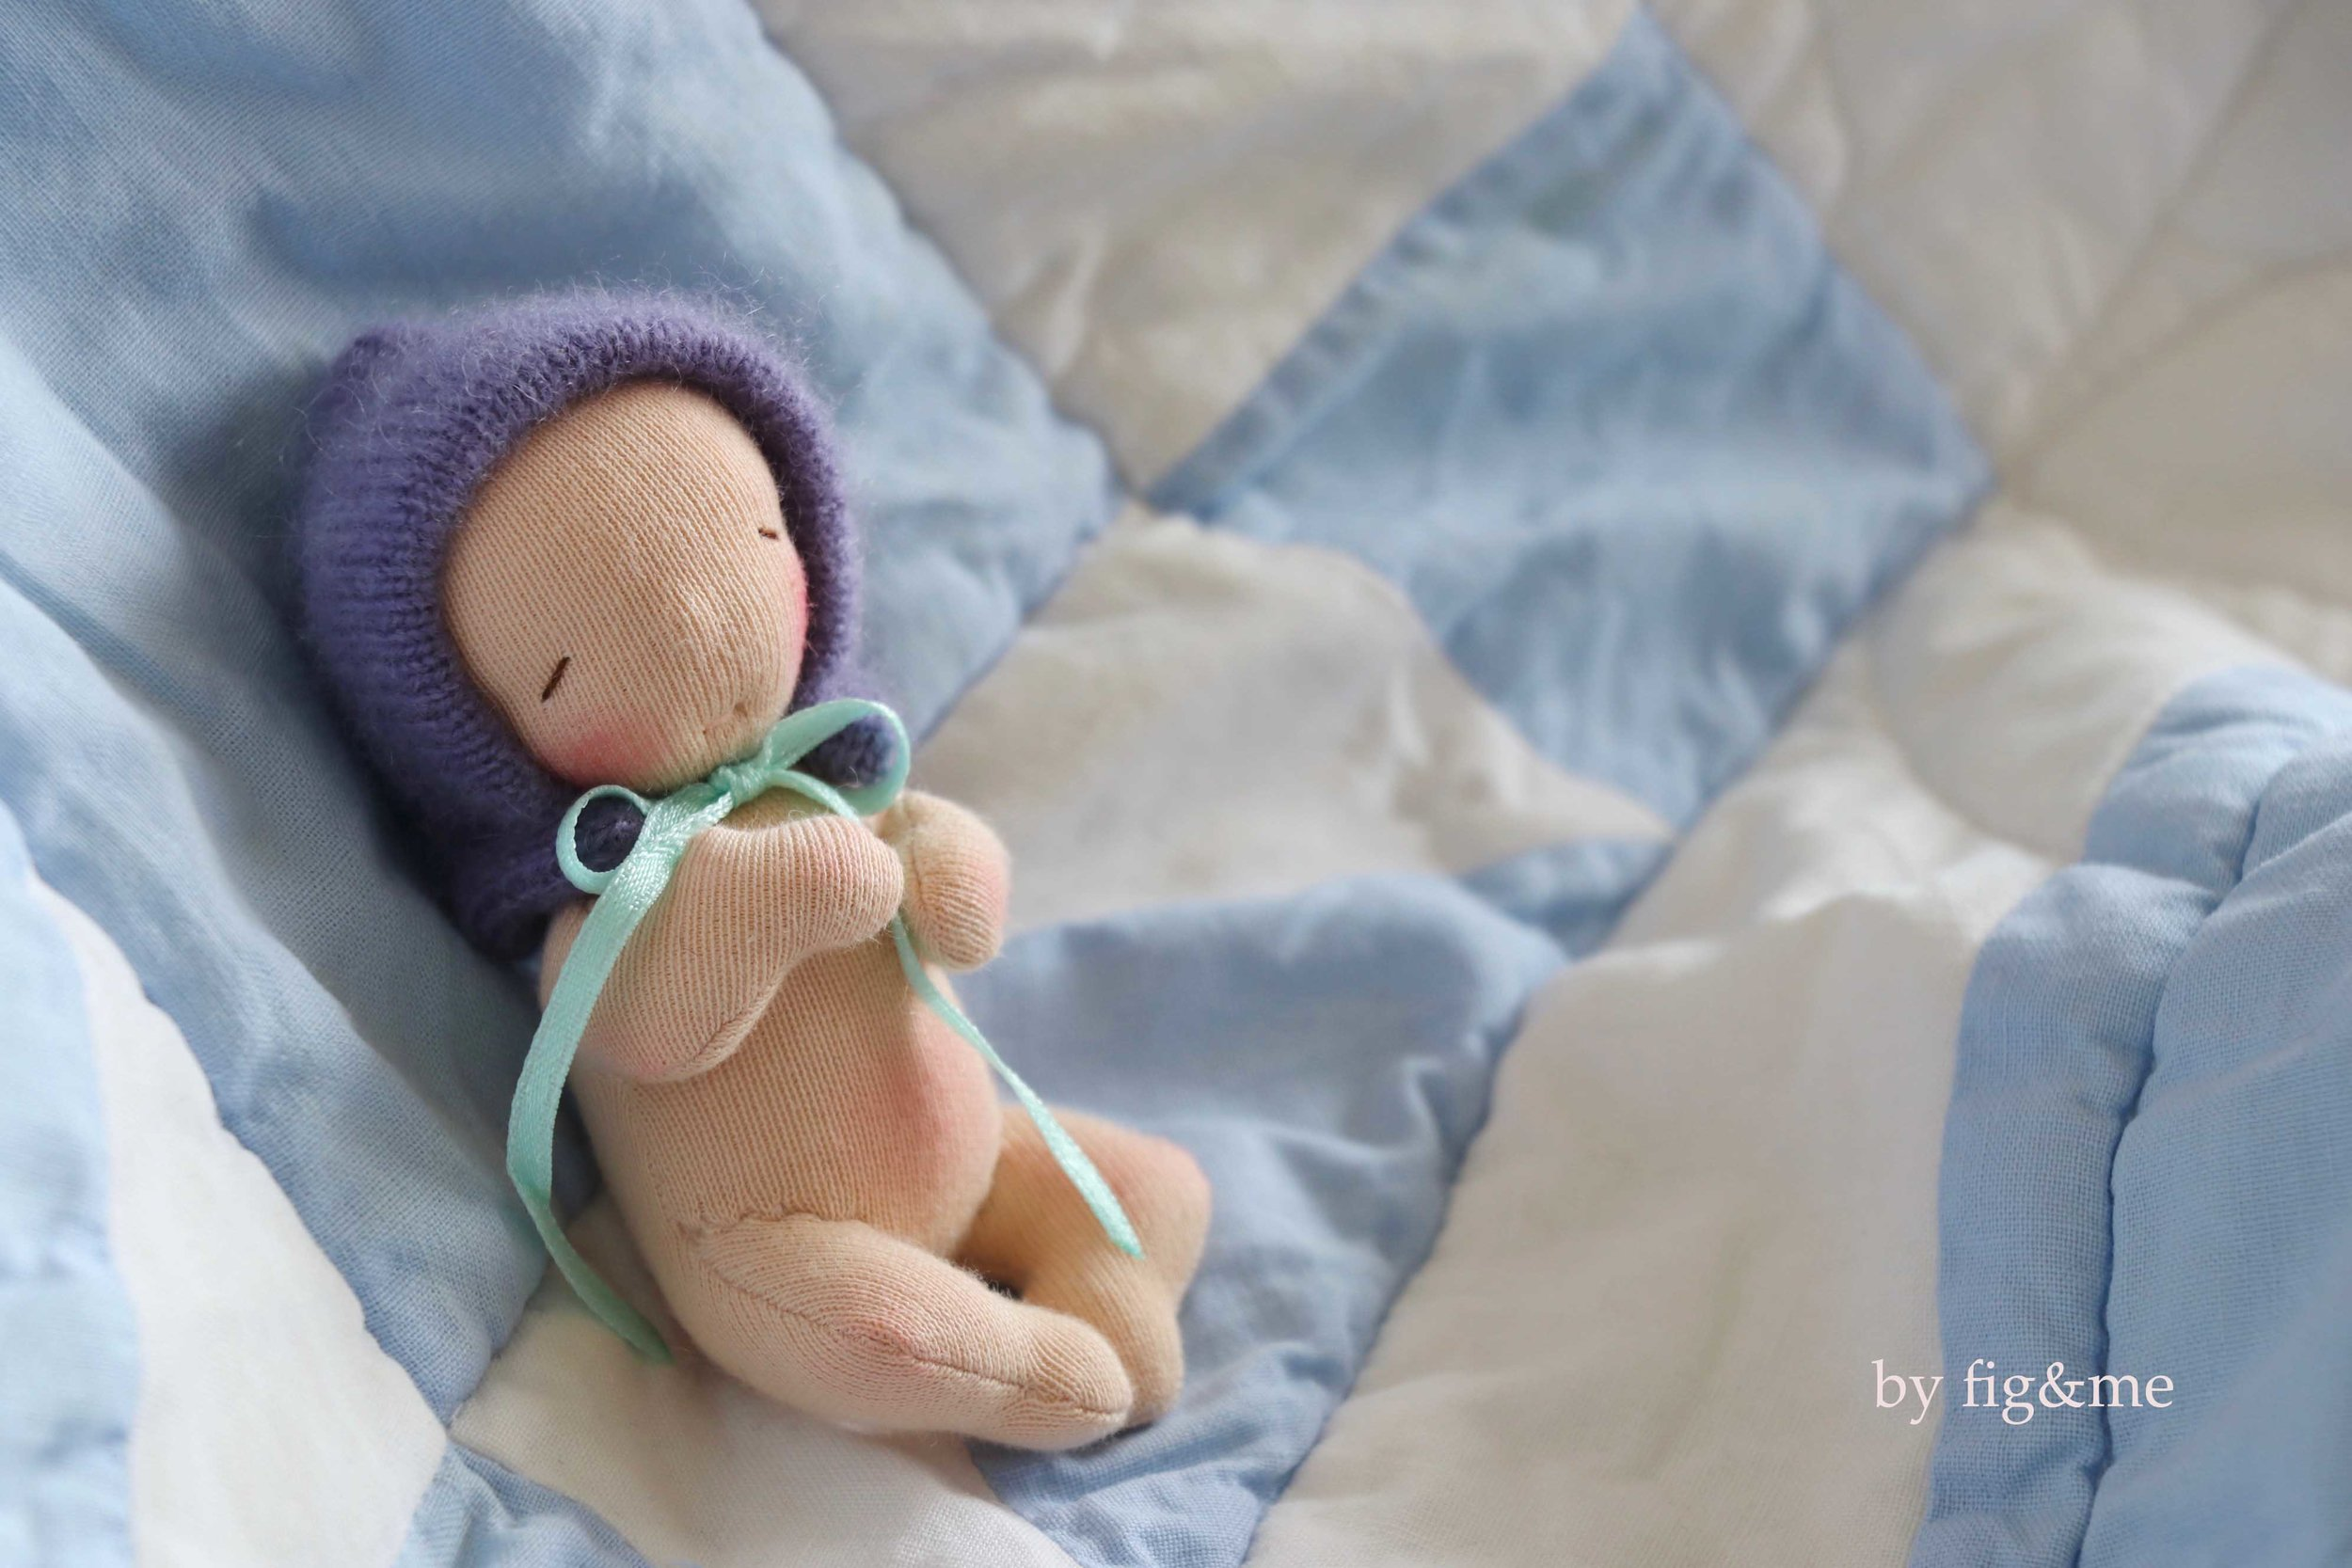 DIY doll making pattern: In the Nursery. Learn to make this miniature baby doll that measures 4 inches tall. Pattern created by fig and me.